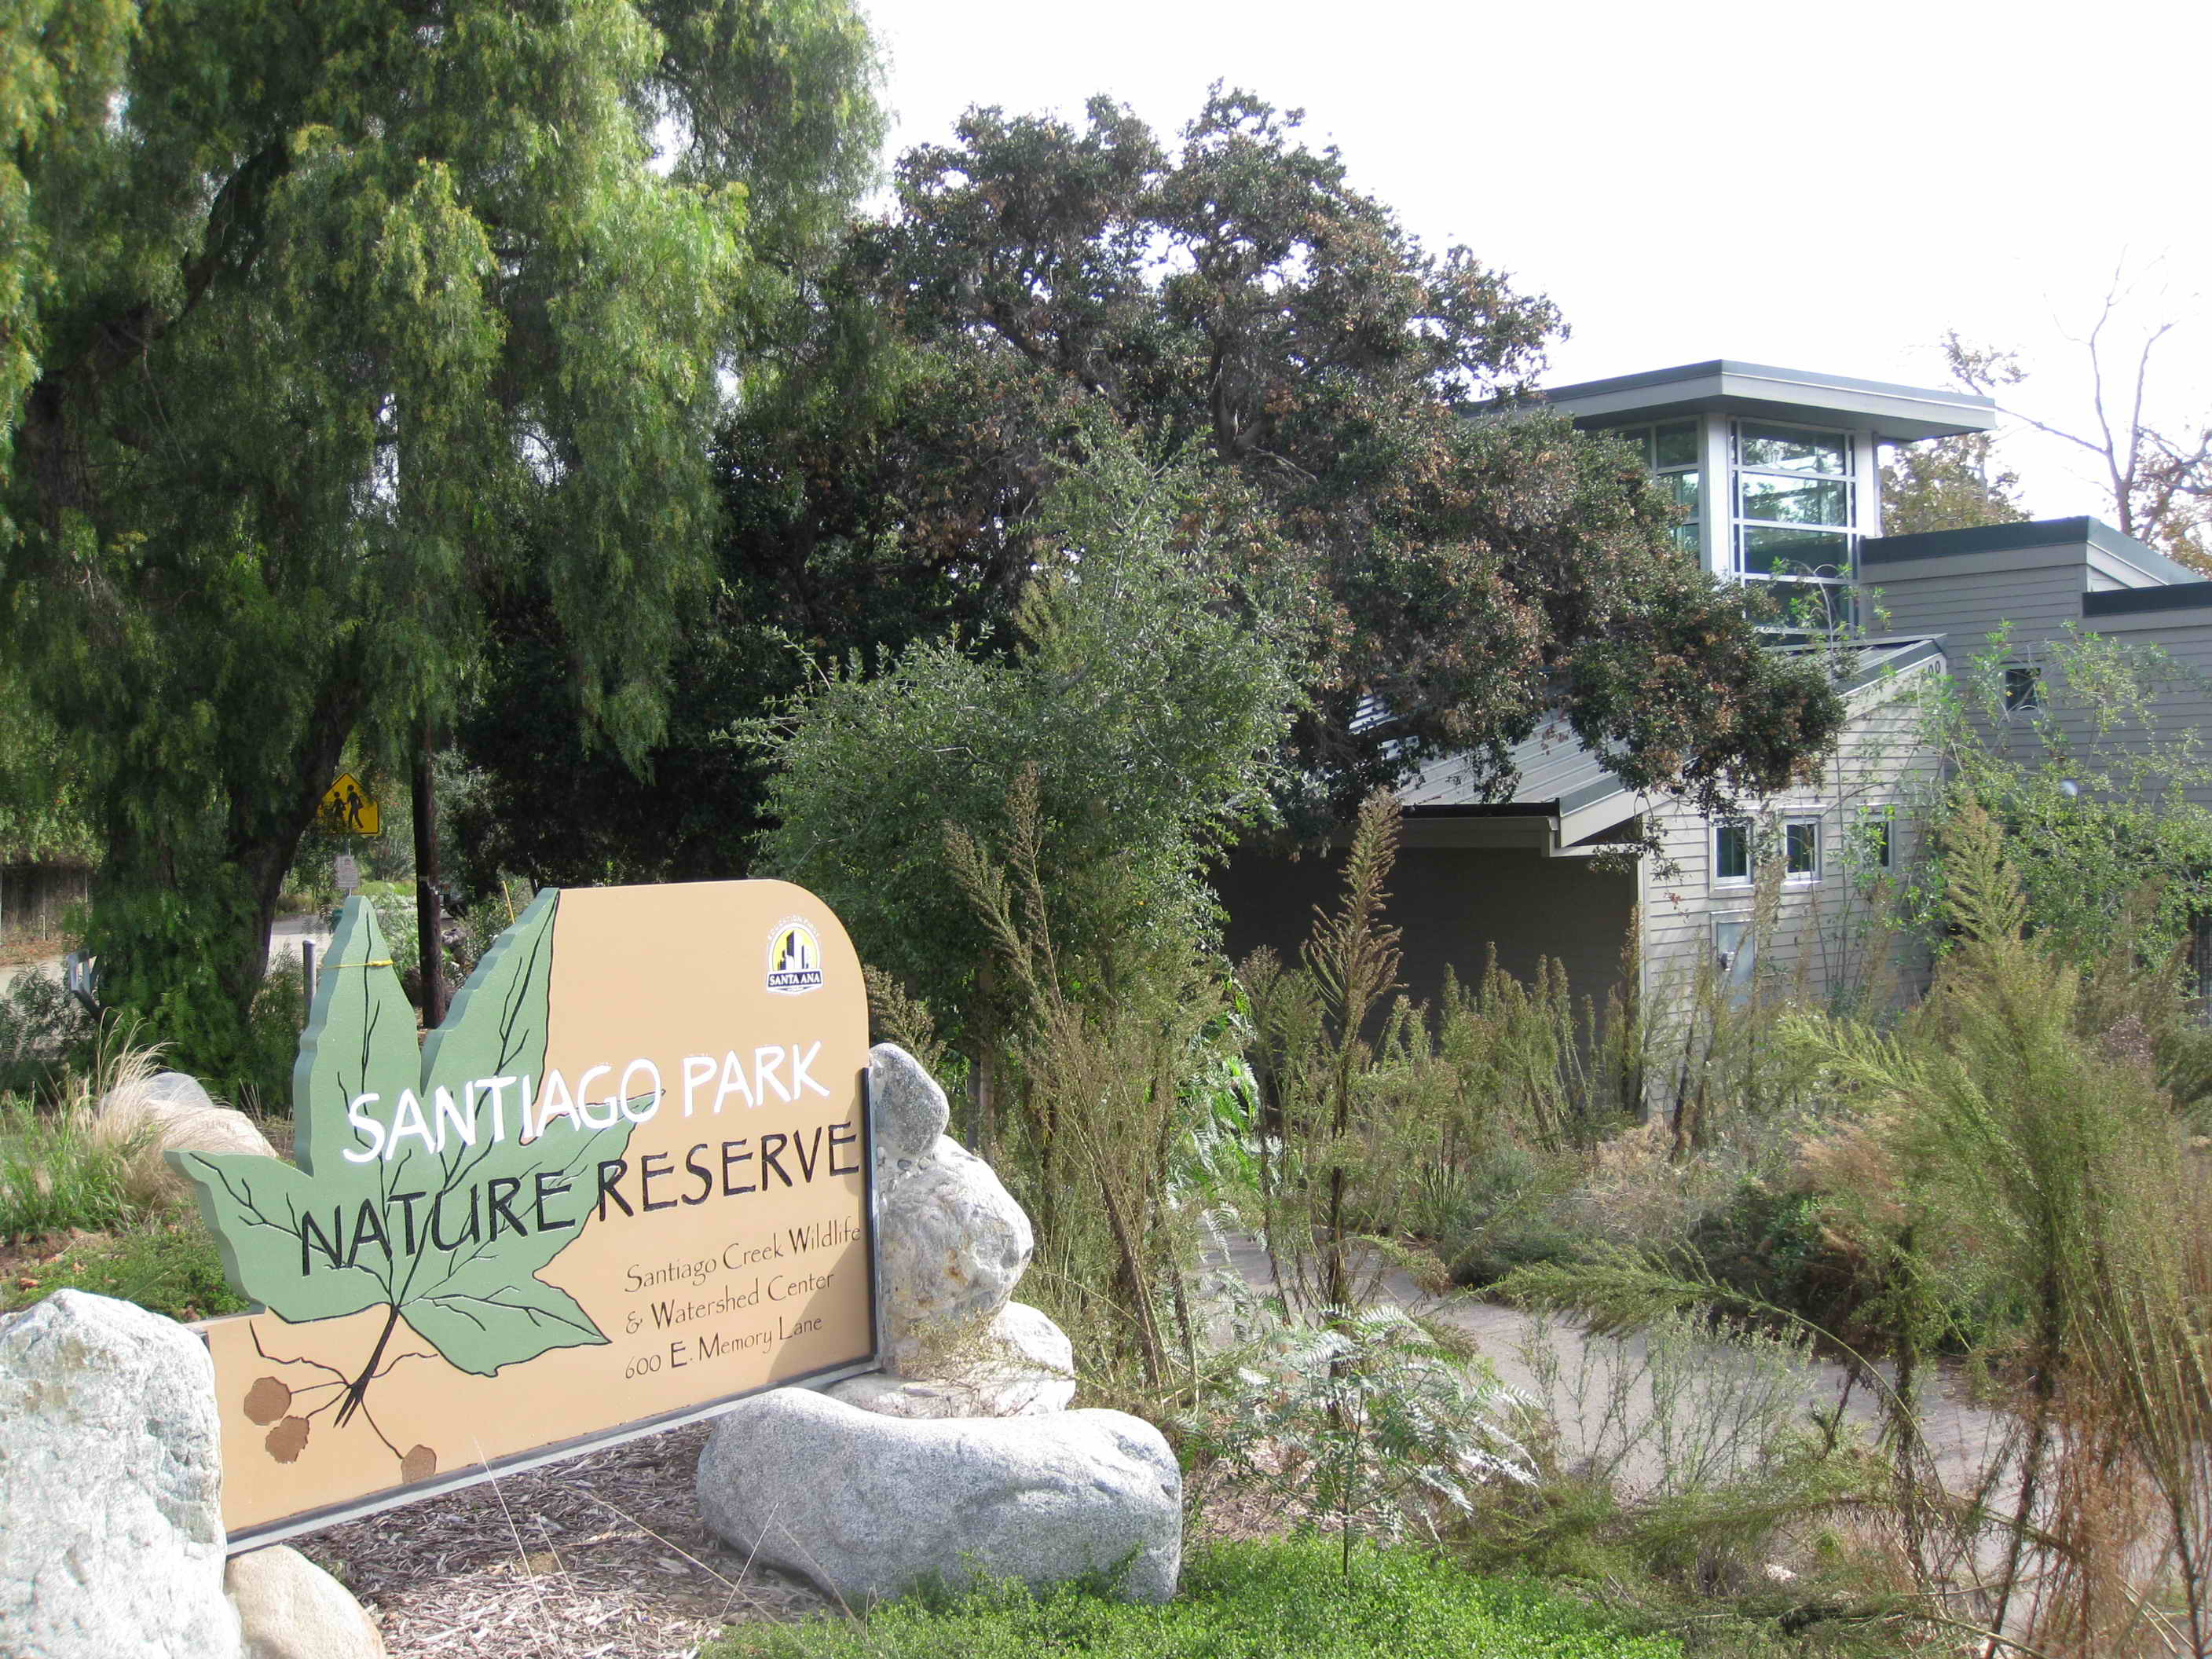 Santiago Park Nature Reserve Sign